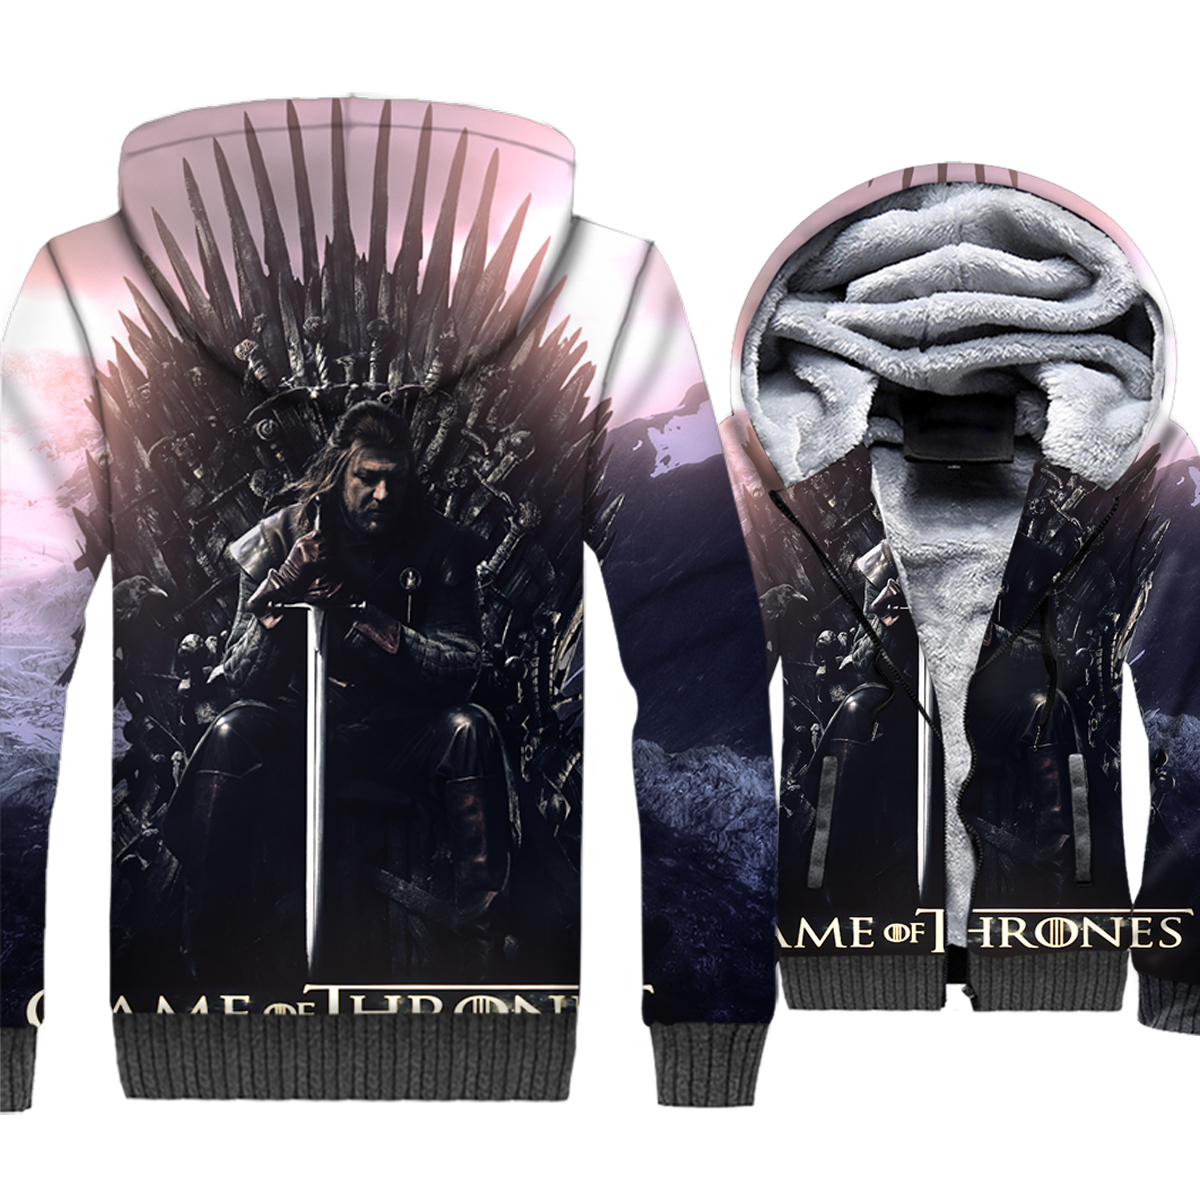 Game of Thrones Jacket Men 3D Hoodies House Stark Sweatshirt Winter Thick Fleece Coat One Throne To Rule Them All Streetwear 5XL